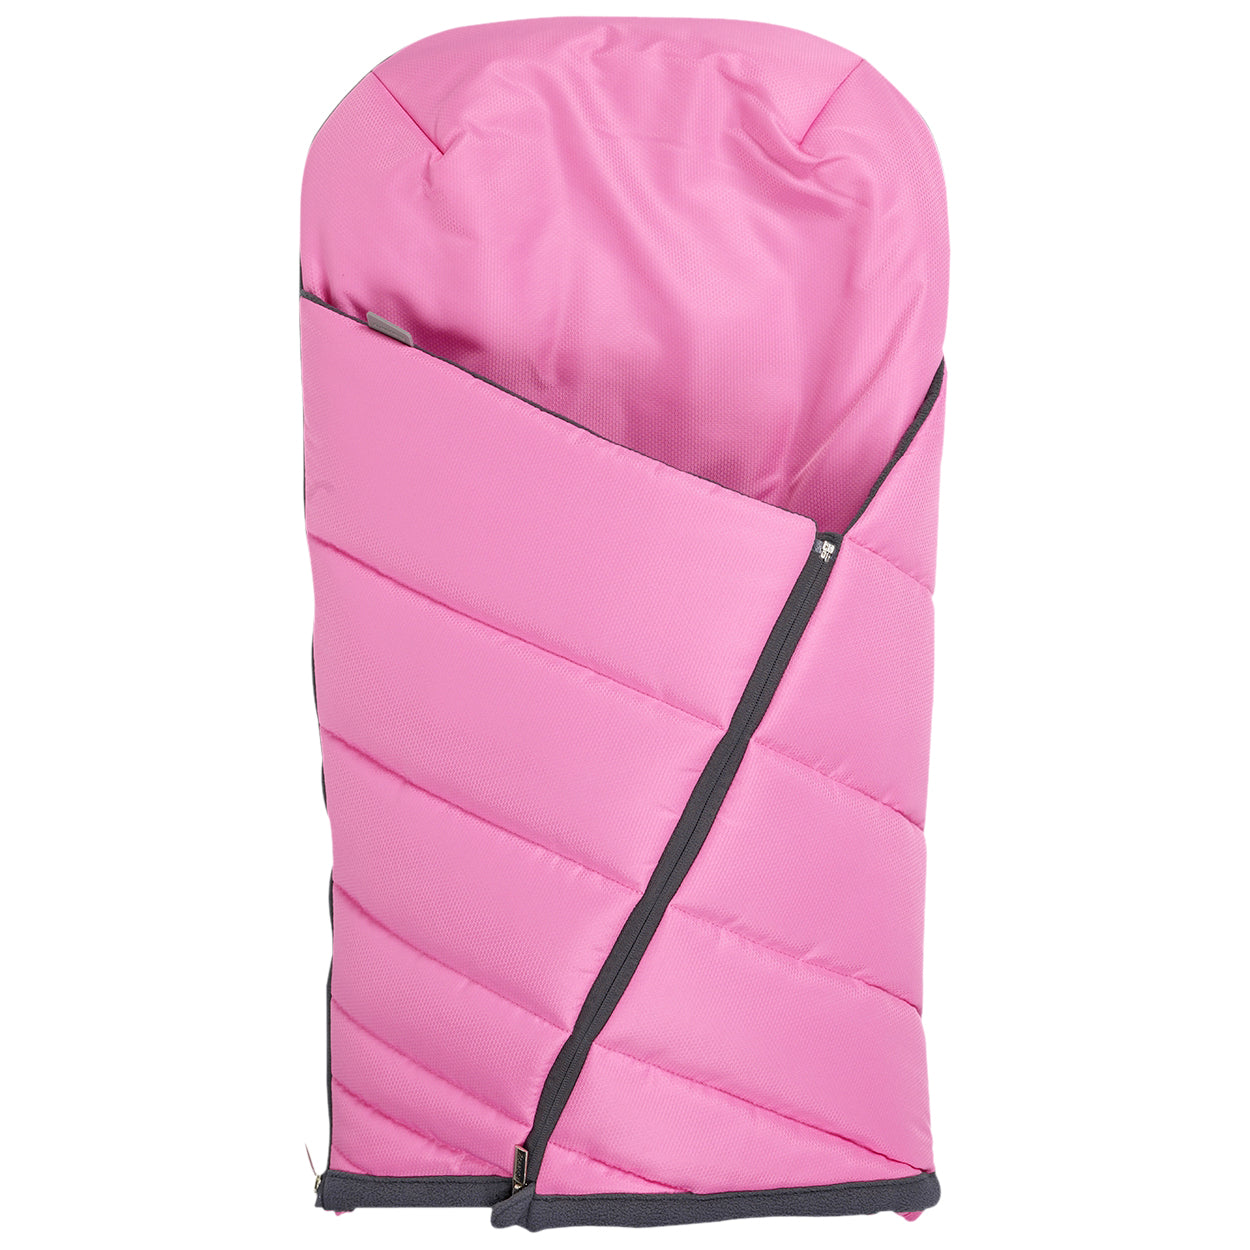 iCandy Raspberry Duo Pod Picadilly Pink